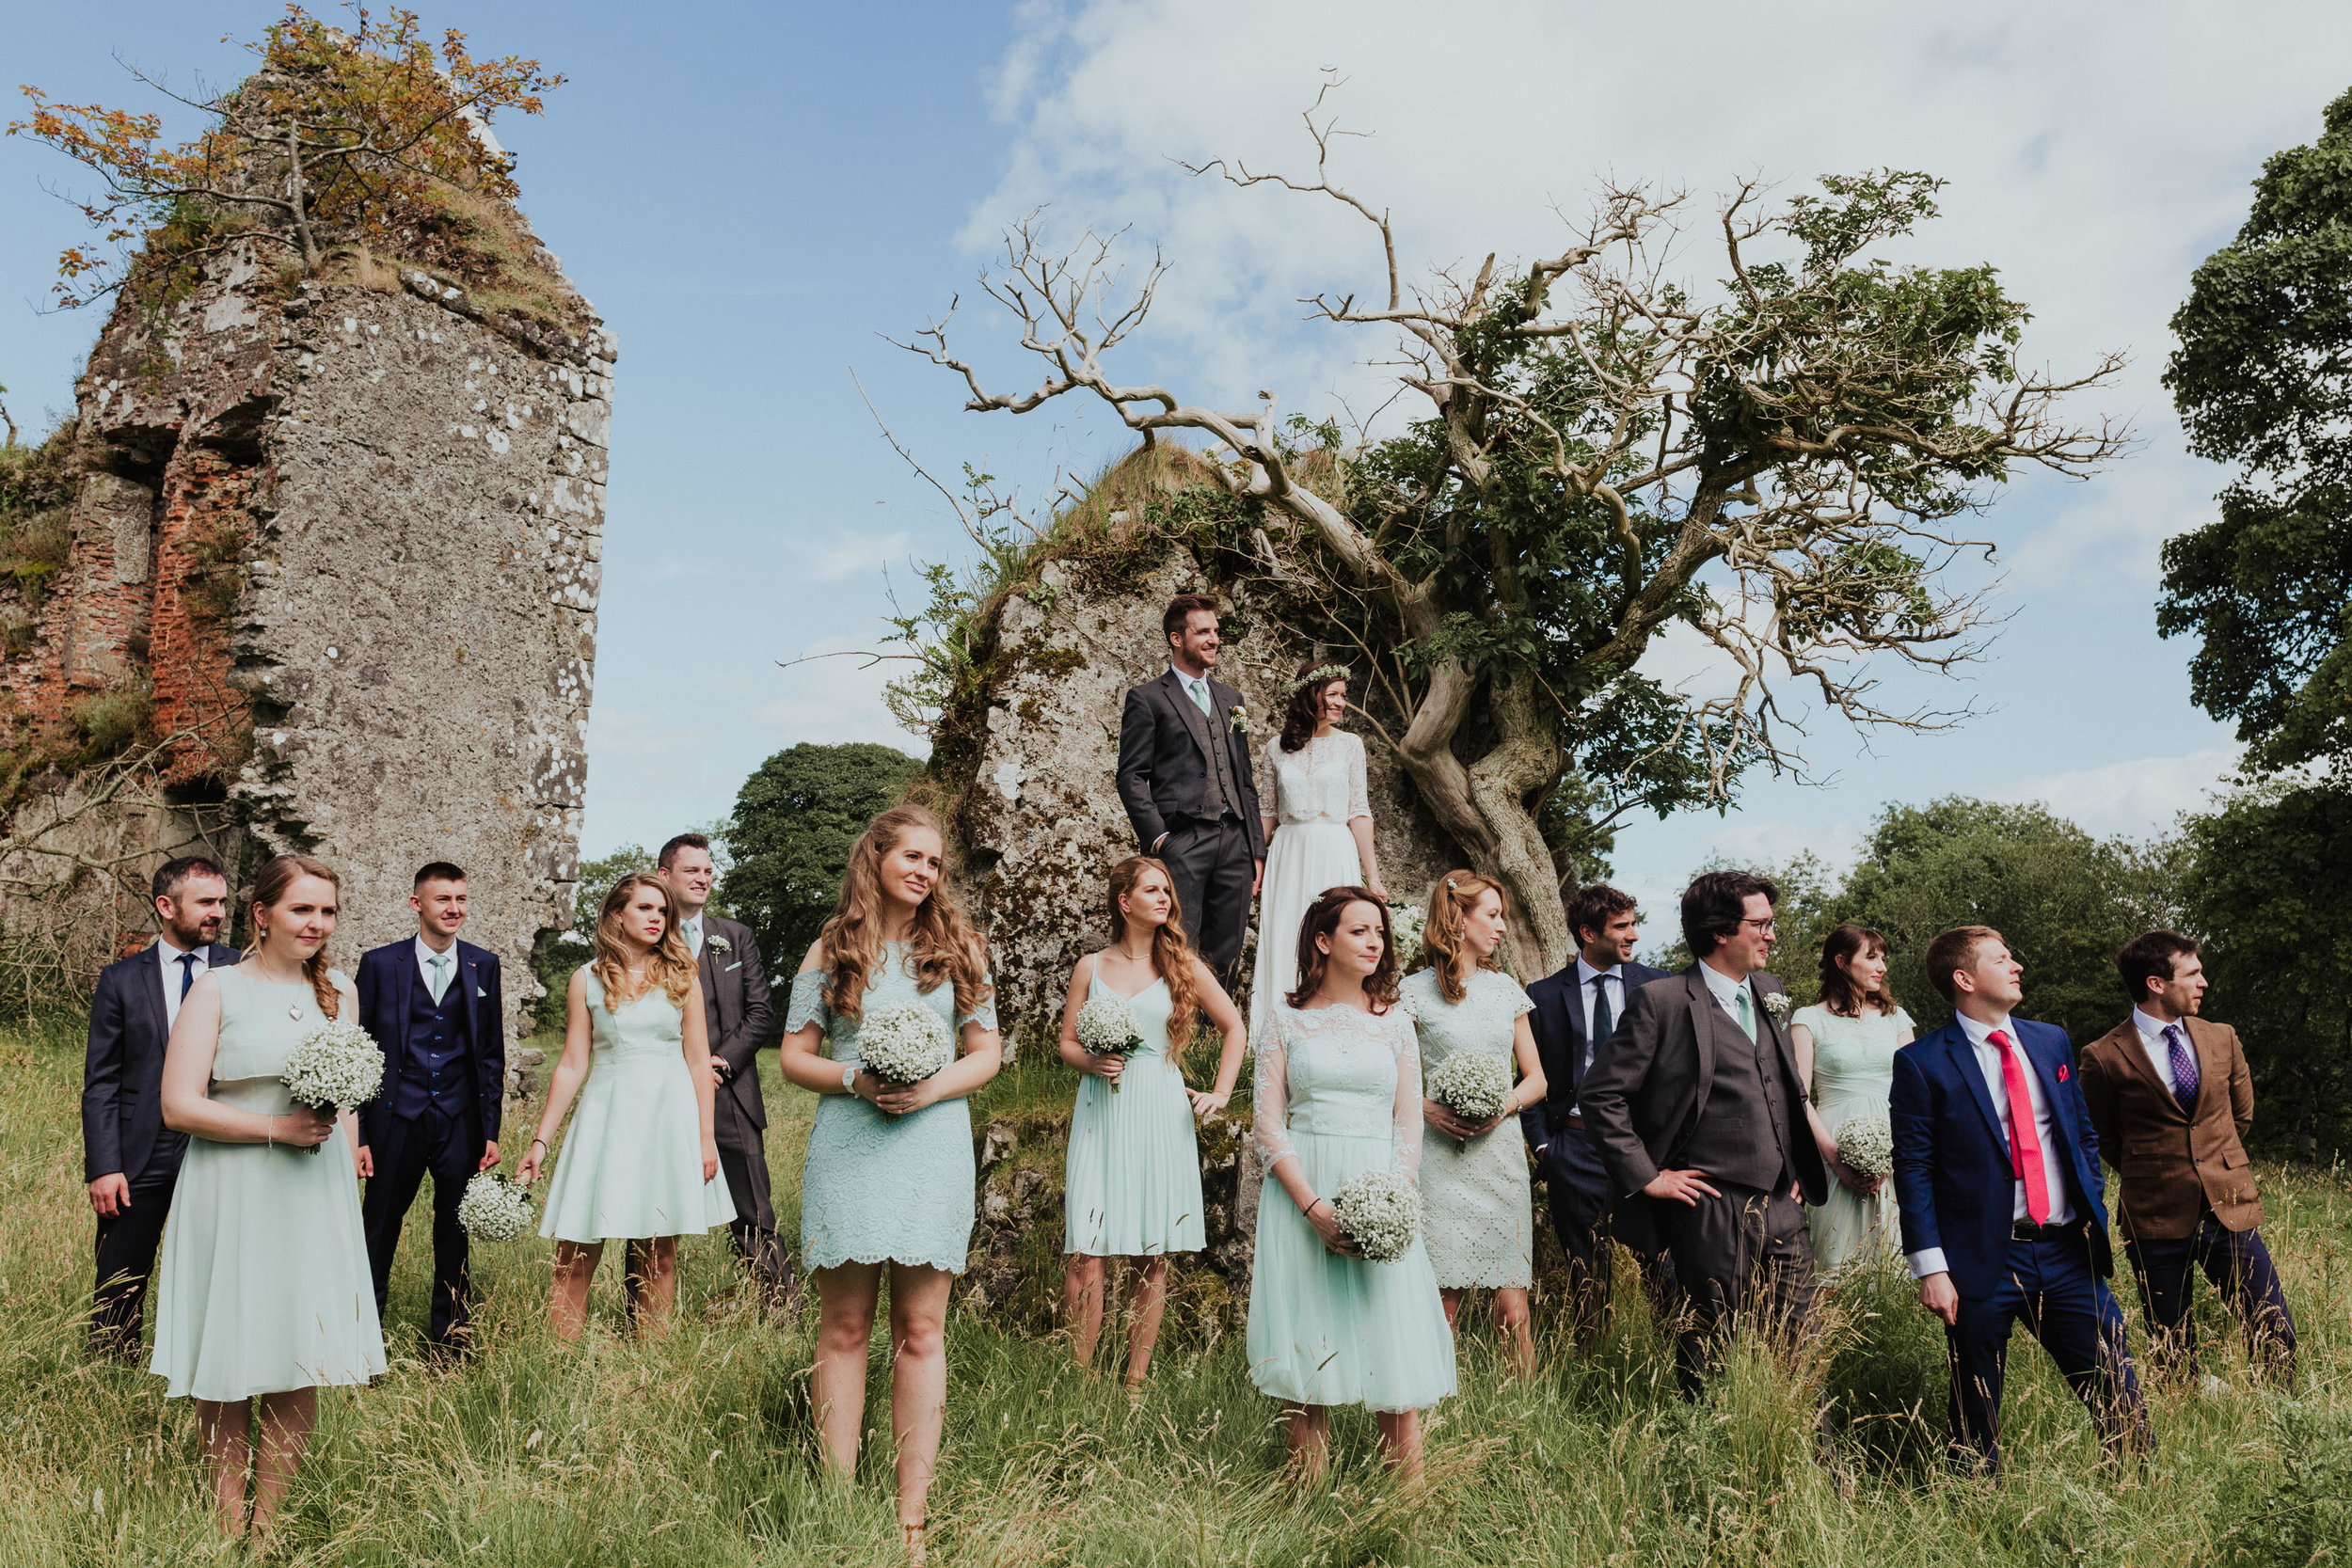 a+s_temple_house_sligo_wedding_livia_figueiredo_746.jpg